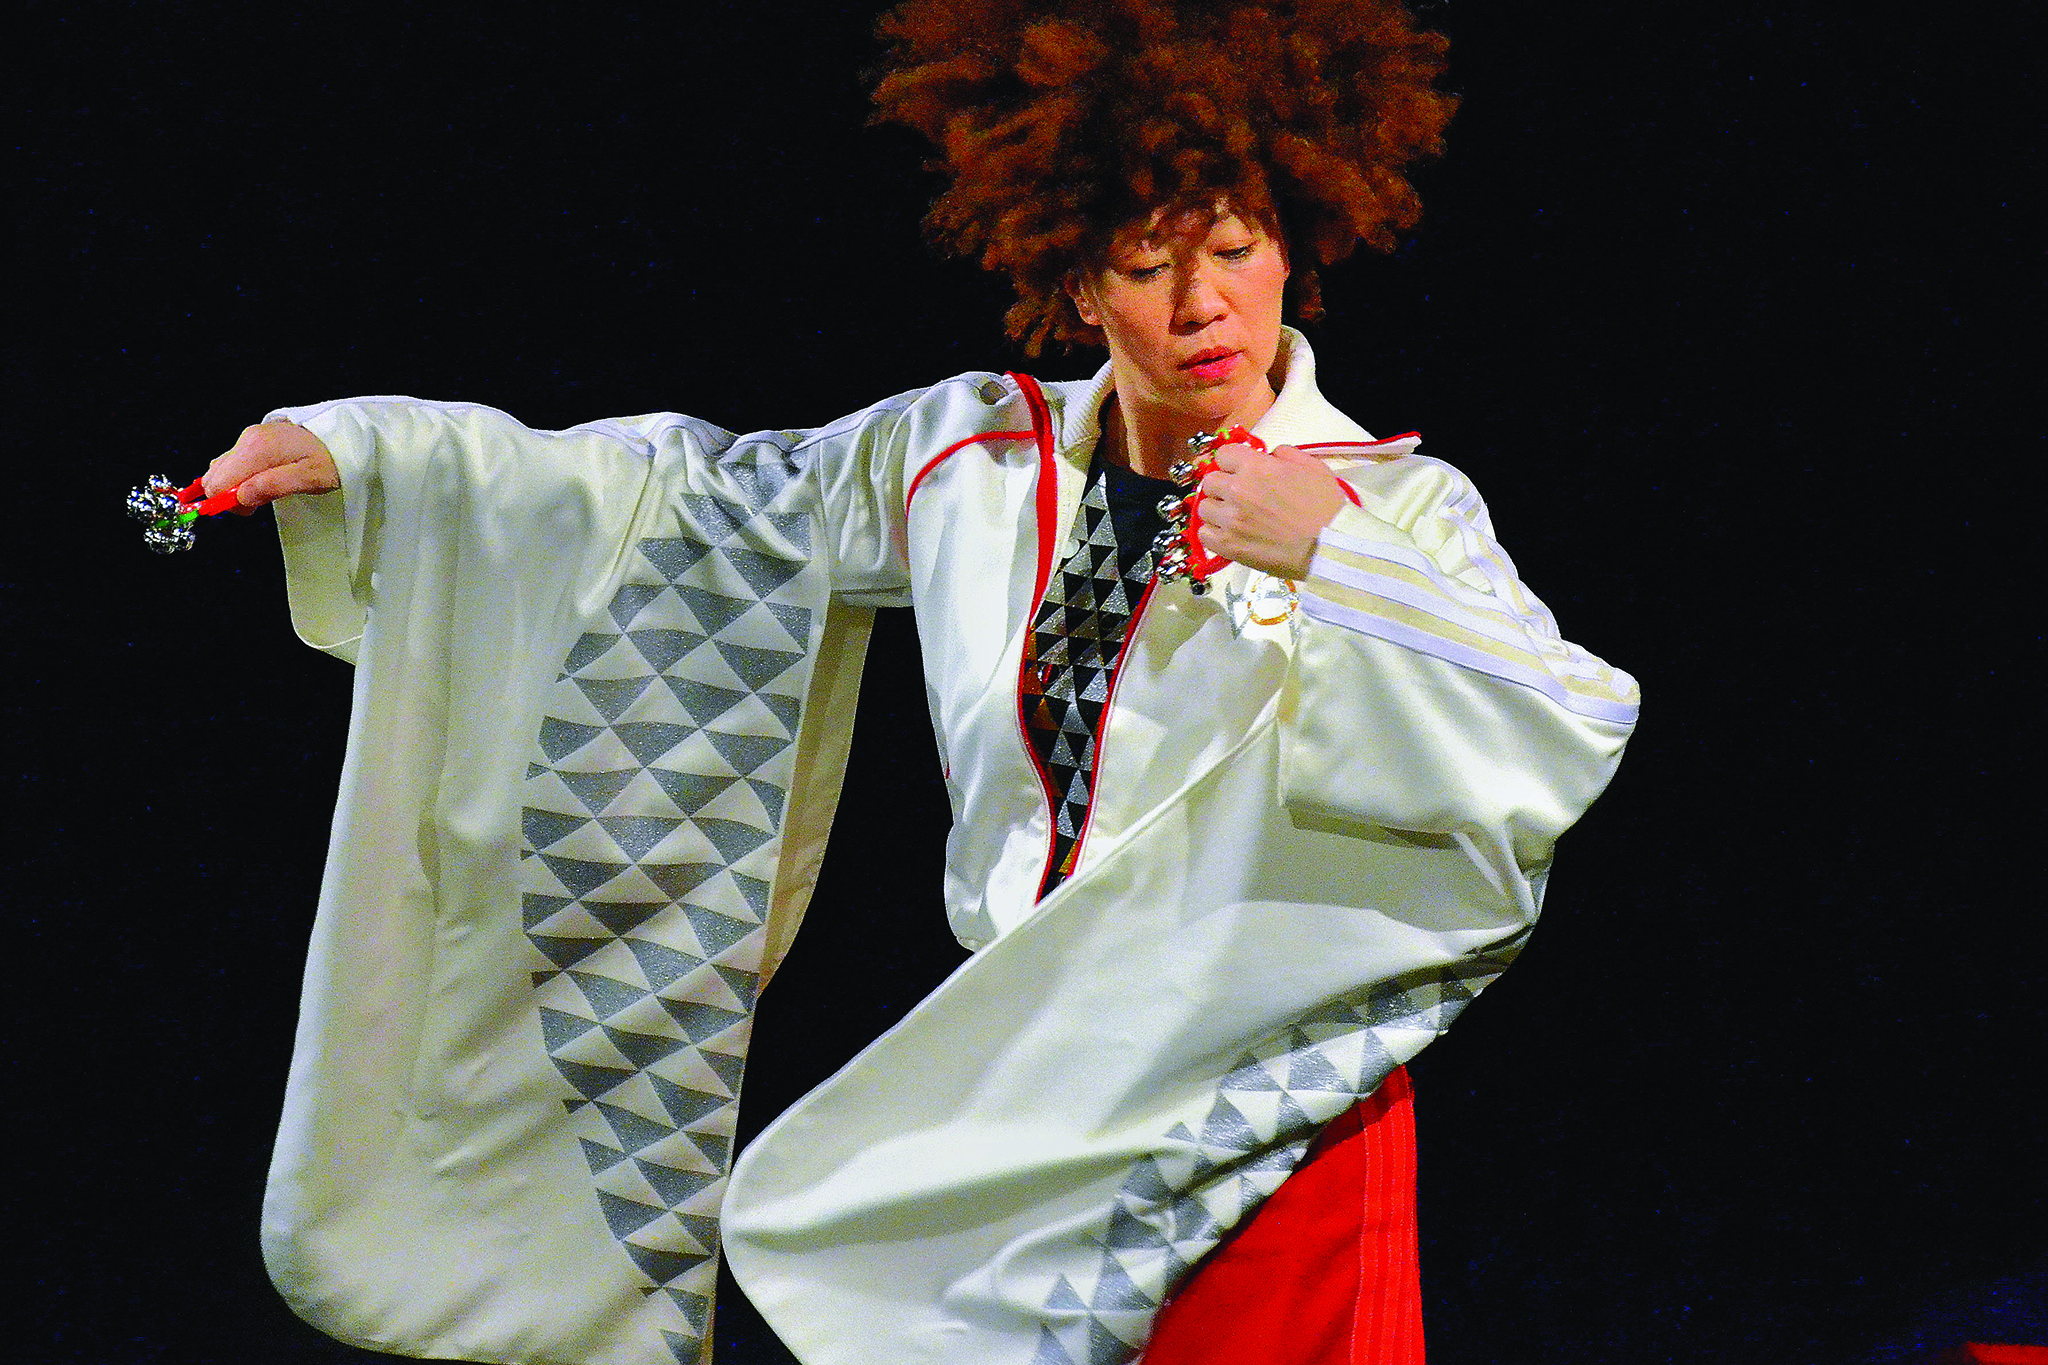 Experience romance and tragedy at New York Live Arts